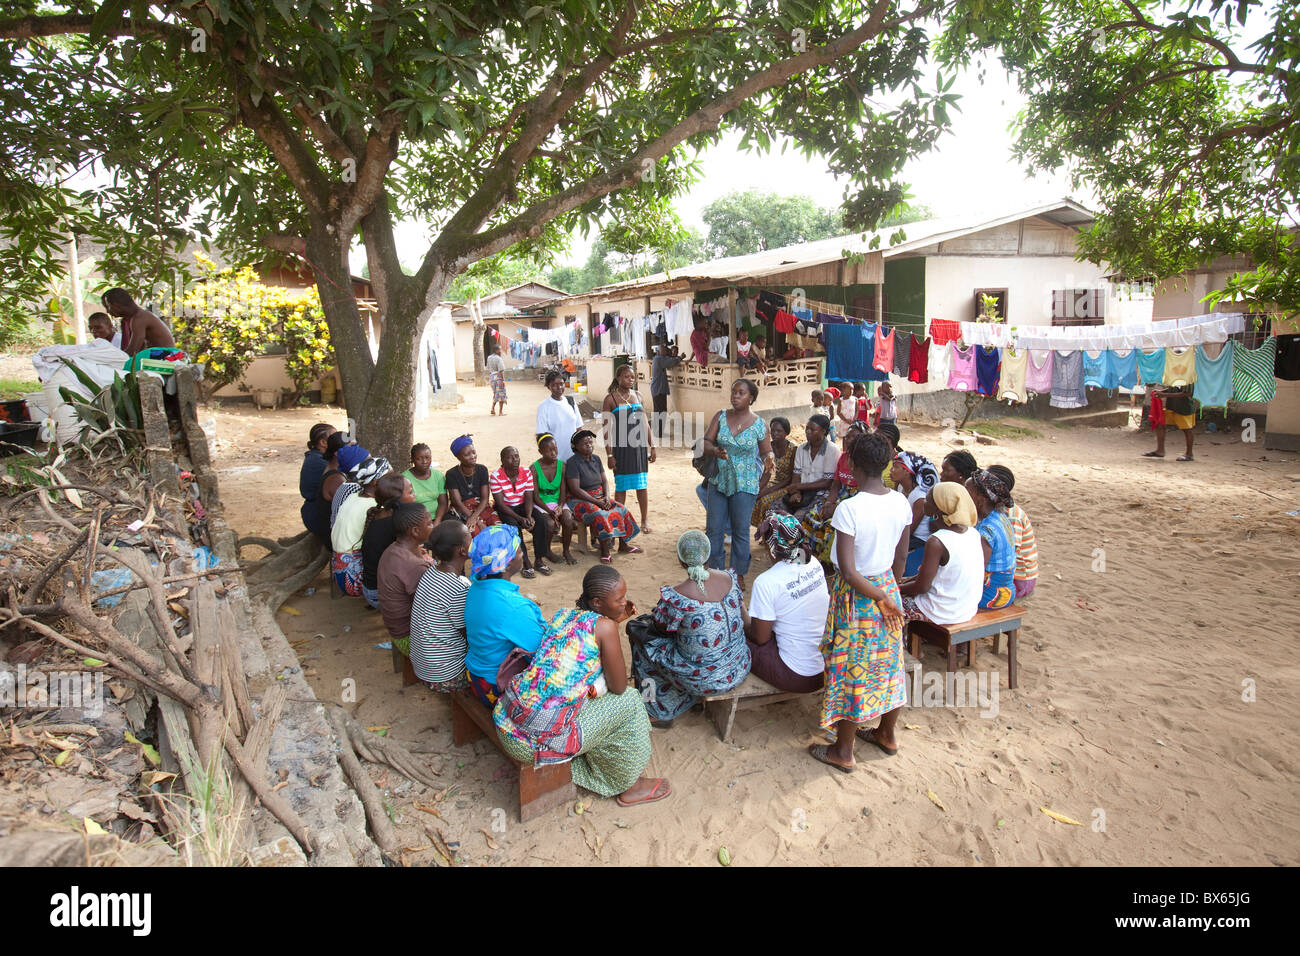 A women's community group meets in a neighborhood in Monrovia, Liberia, West Africa. - Stock Image